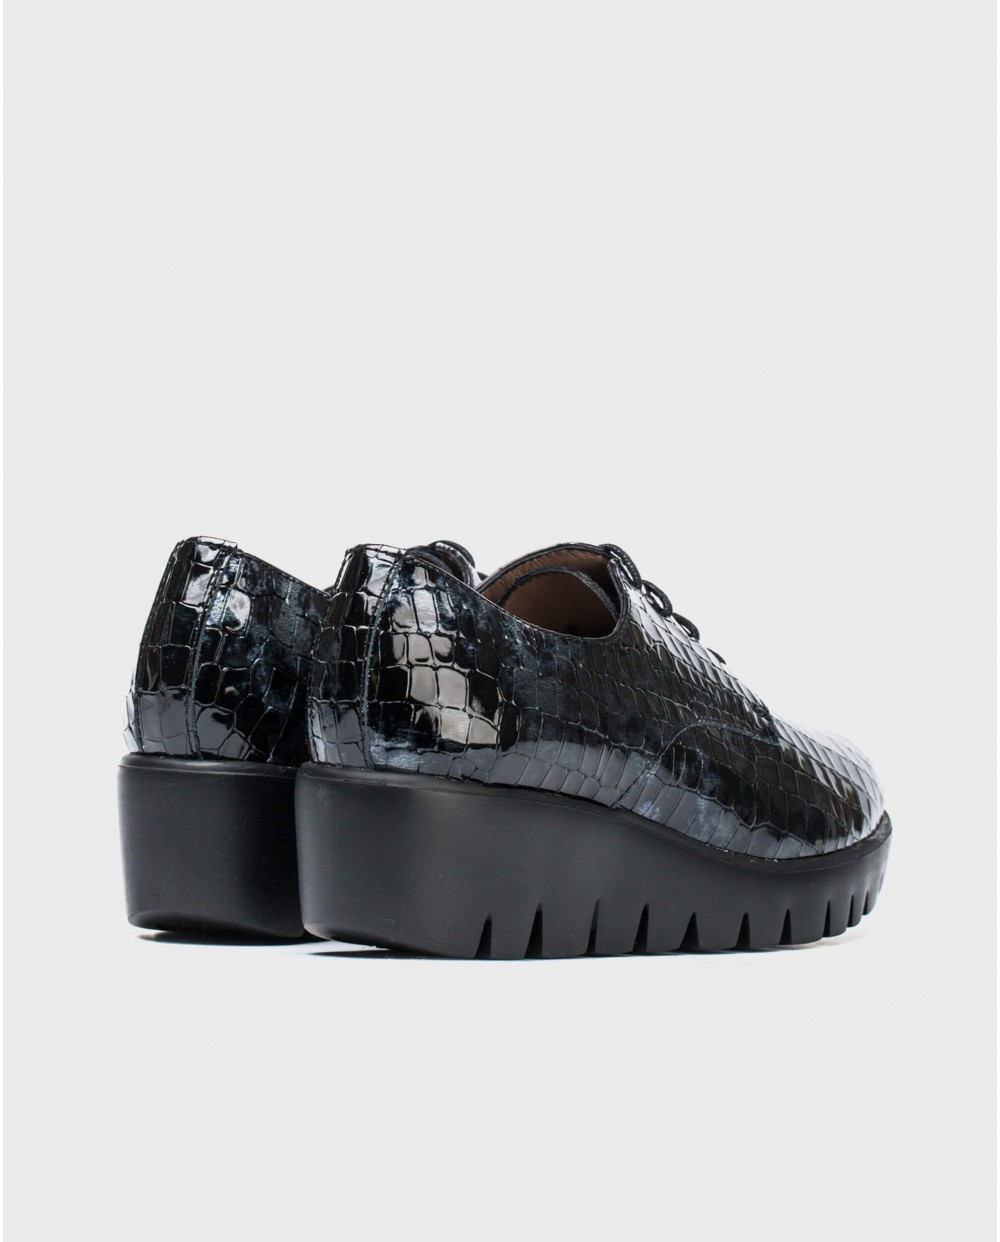 Textured patent leather brogues